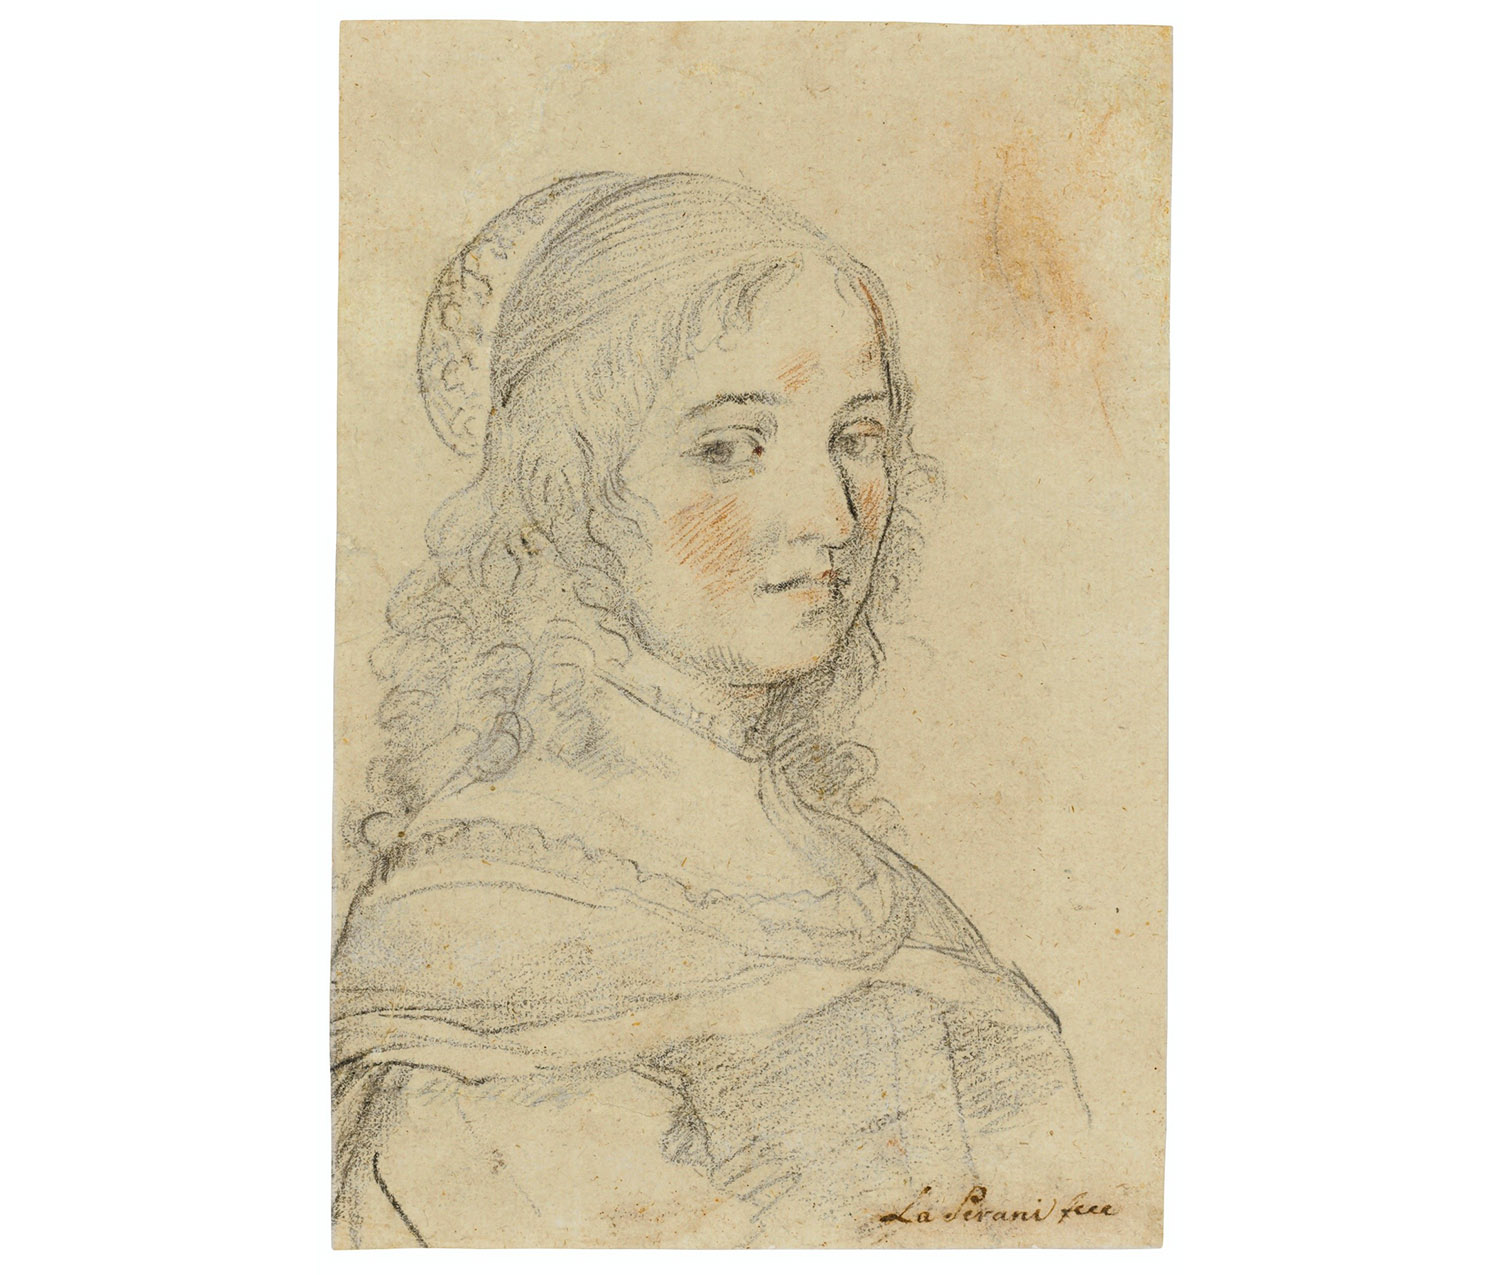 Elisabetta Sirani. Italian, 1638-1665 Self-portrait, ca. 1658, Black and red chalk SC 2020.7.1 Credit line (TBD)